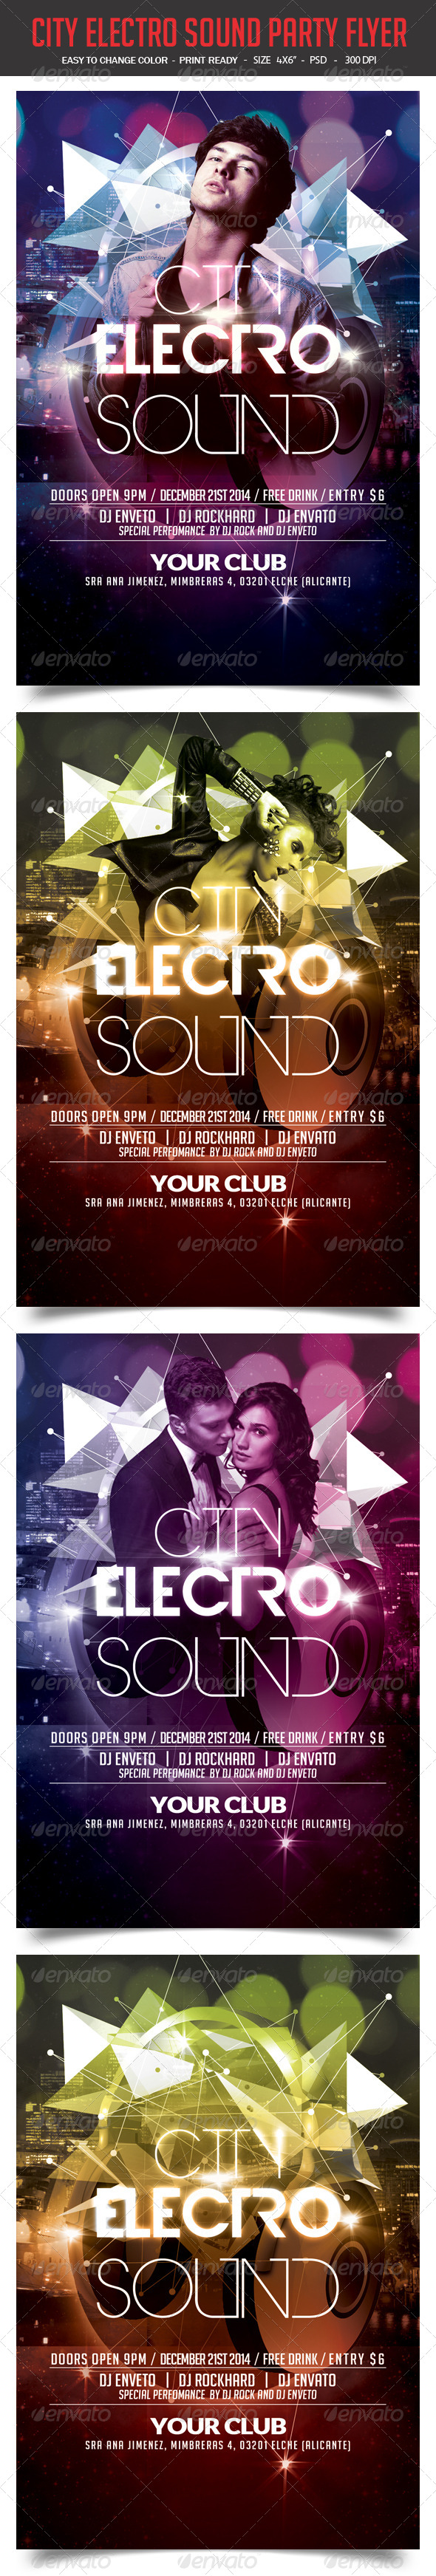 GraphicRiver City Electro Sound Party Flyer 8257740